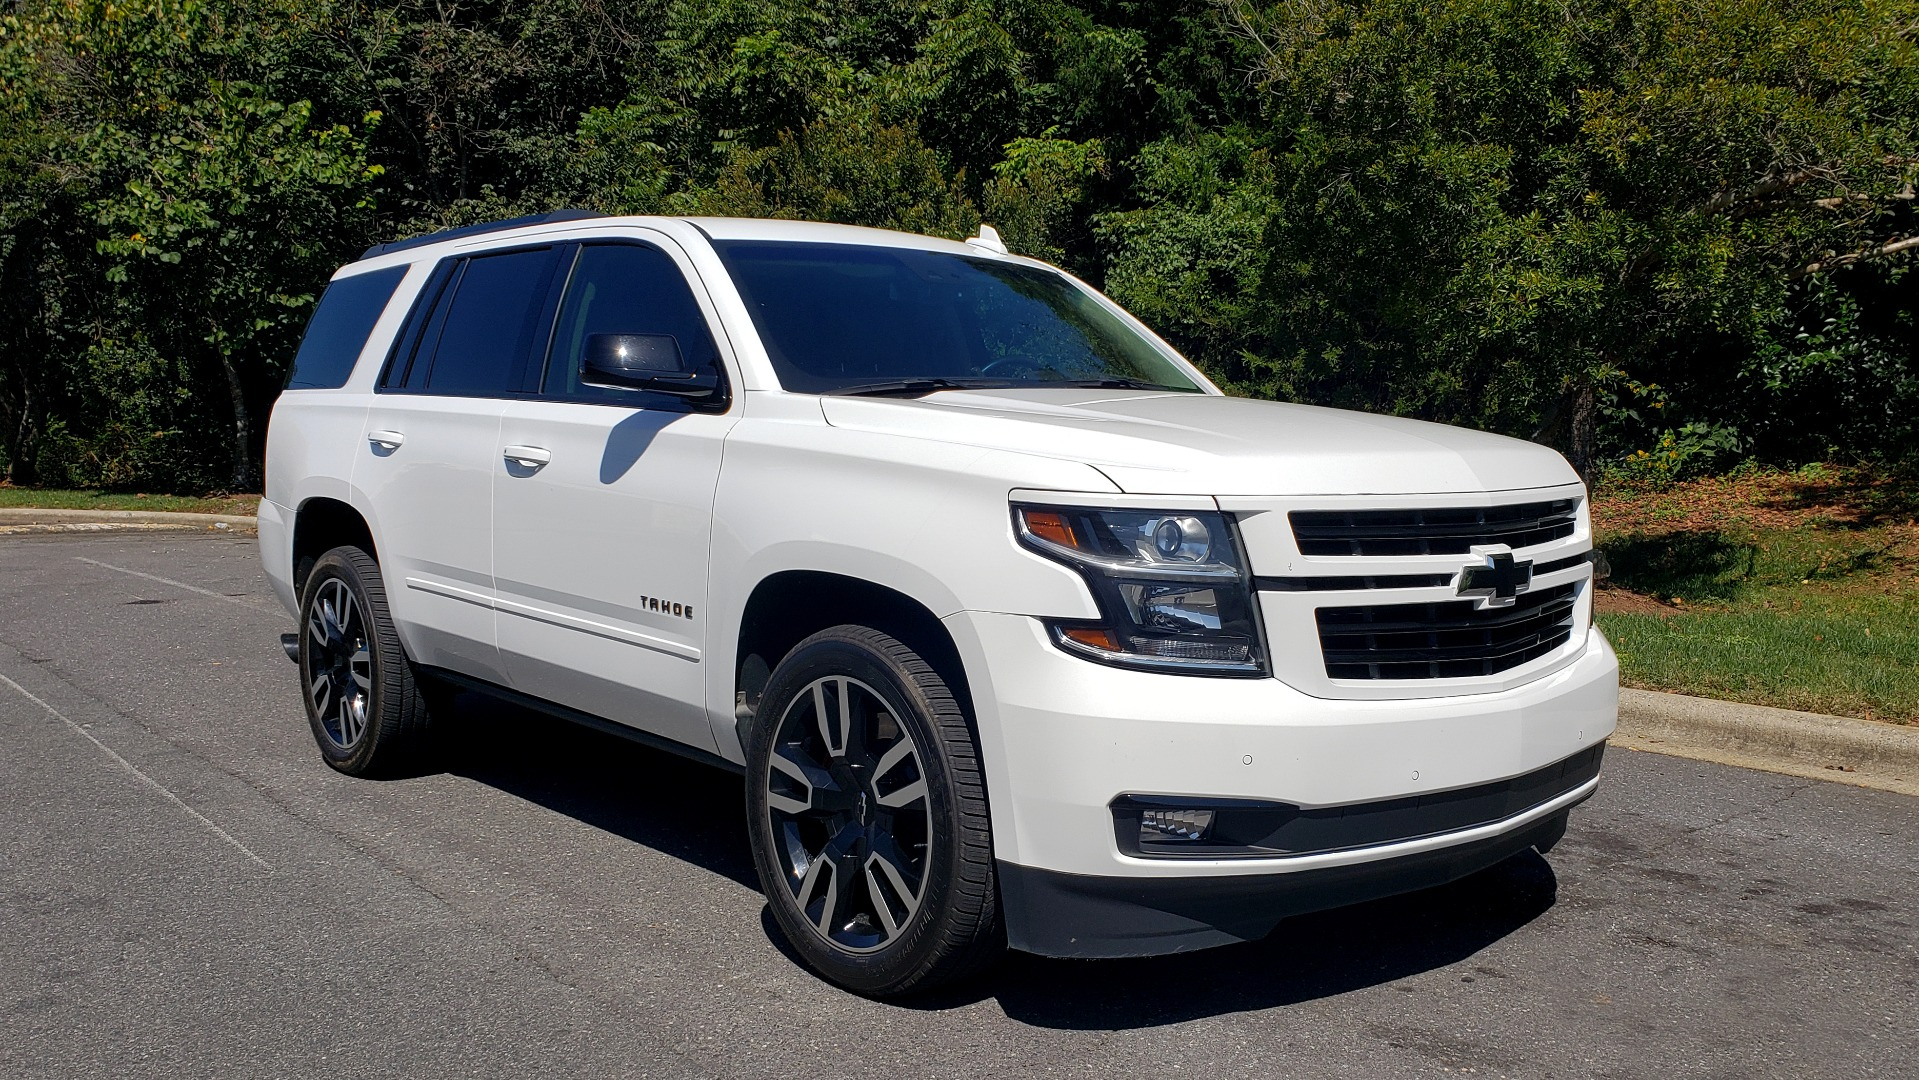 Used 2018 Chevrolet TAHOE PREMIER 4WD / 6.2L V8 / NAV / SUNROOF / ENT / BOSE / 3-ROW / REARVIEW for sale Sold at Formula Imports in Charlotte NC 28227 6